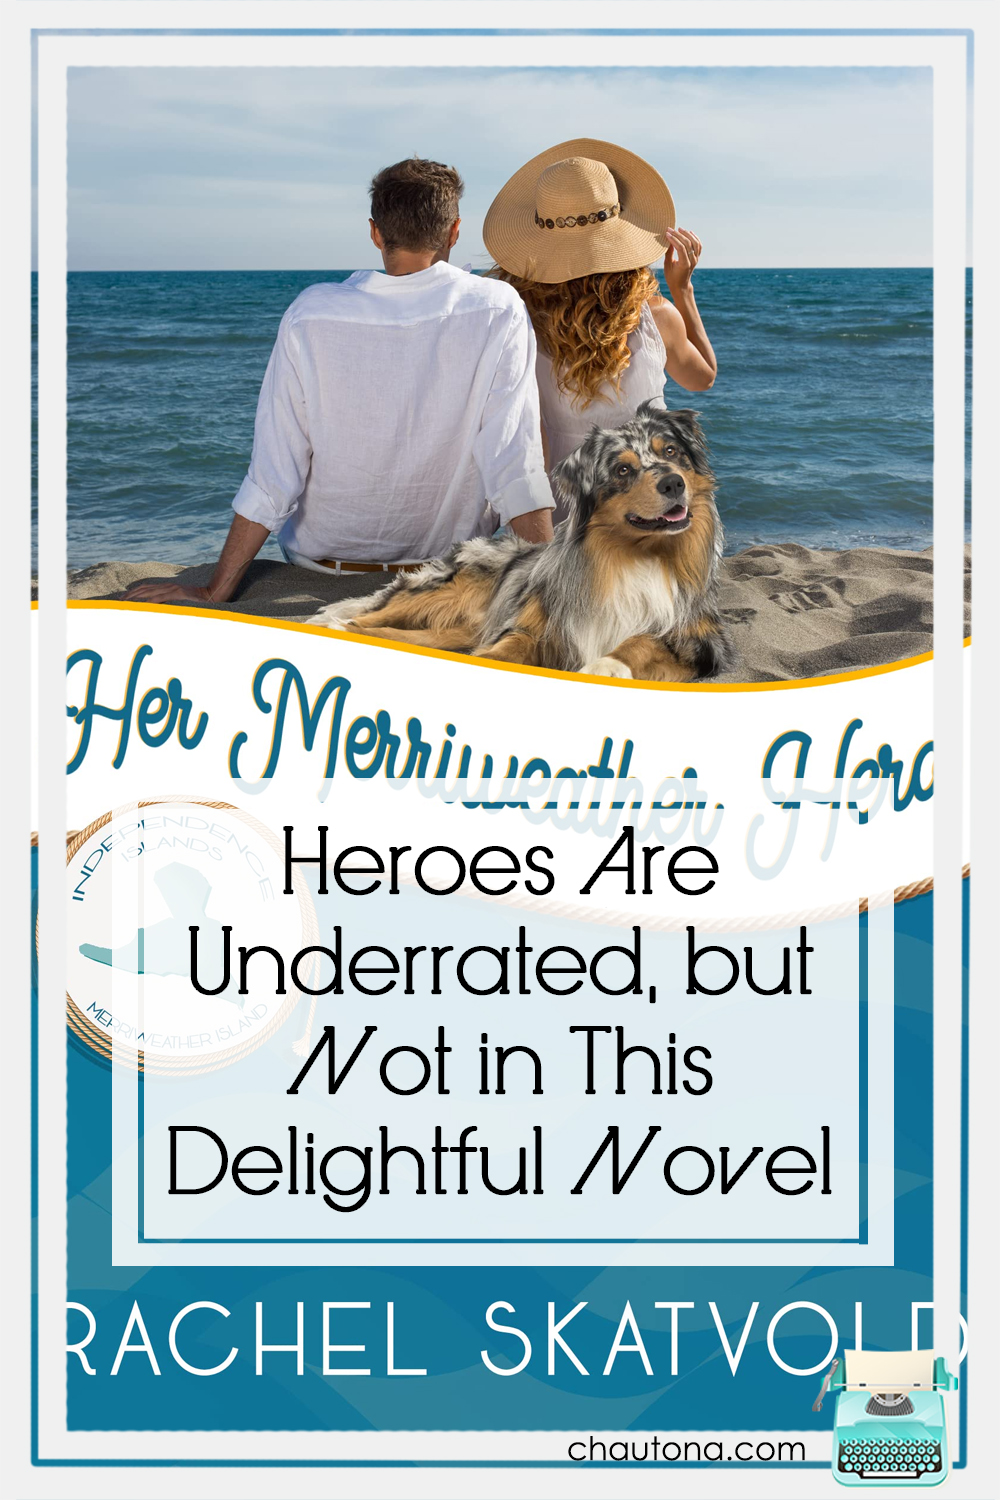 To celebrate Rachel Skatvold's, Her Merriweather Hero, we've got a quiz, and a bunch of giveaways! Celebrate with us! via @chautonahavig